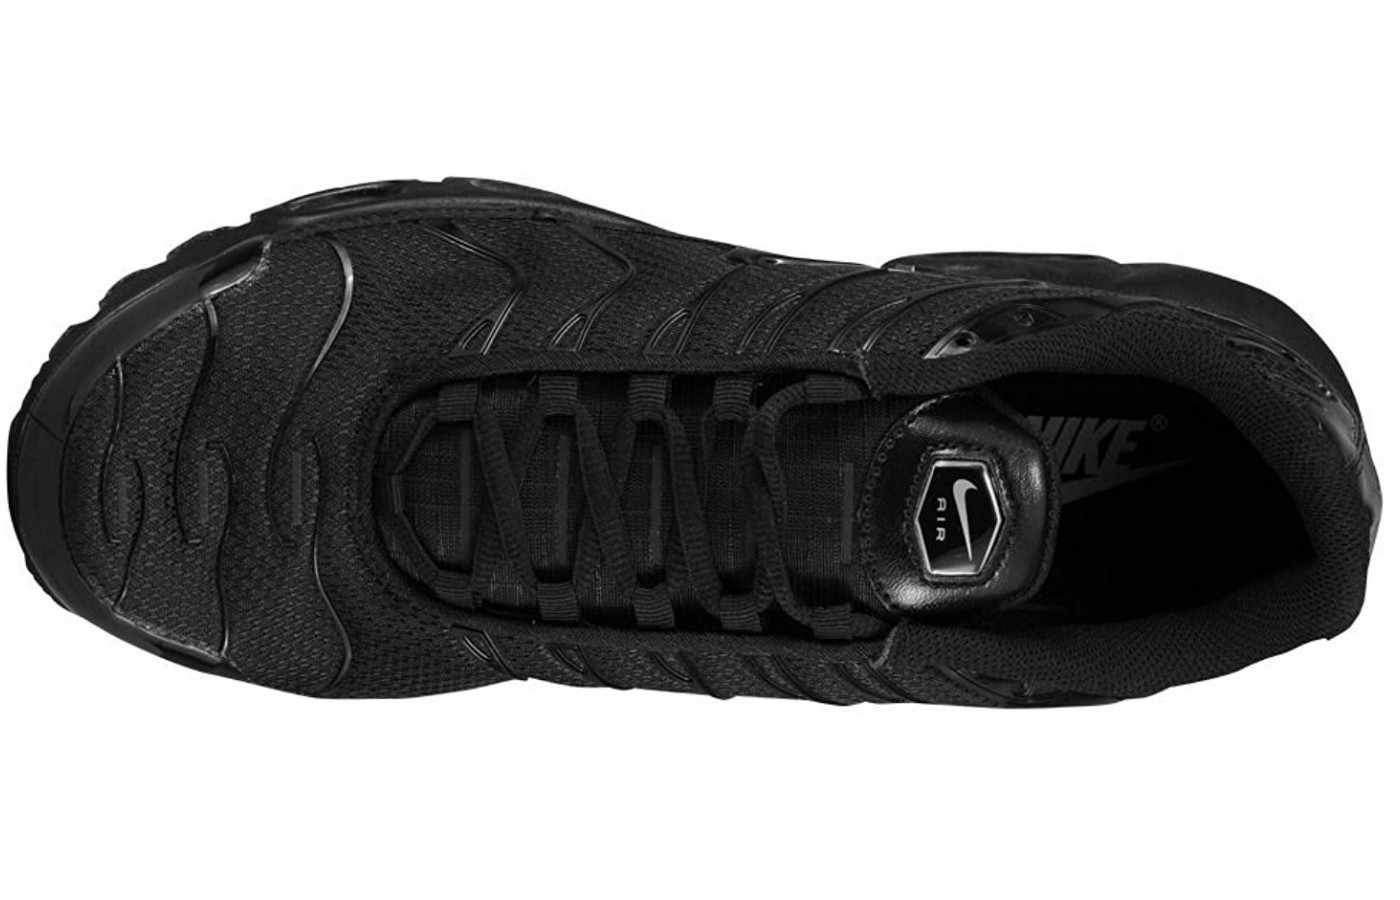 A top view of the Nike Air Max Plus shoe